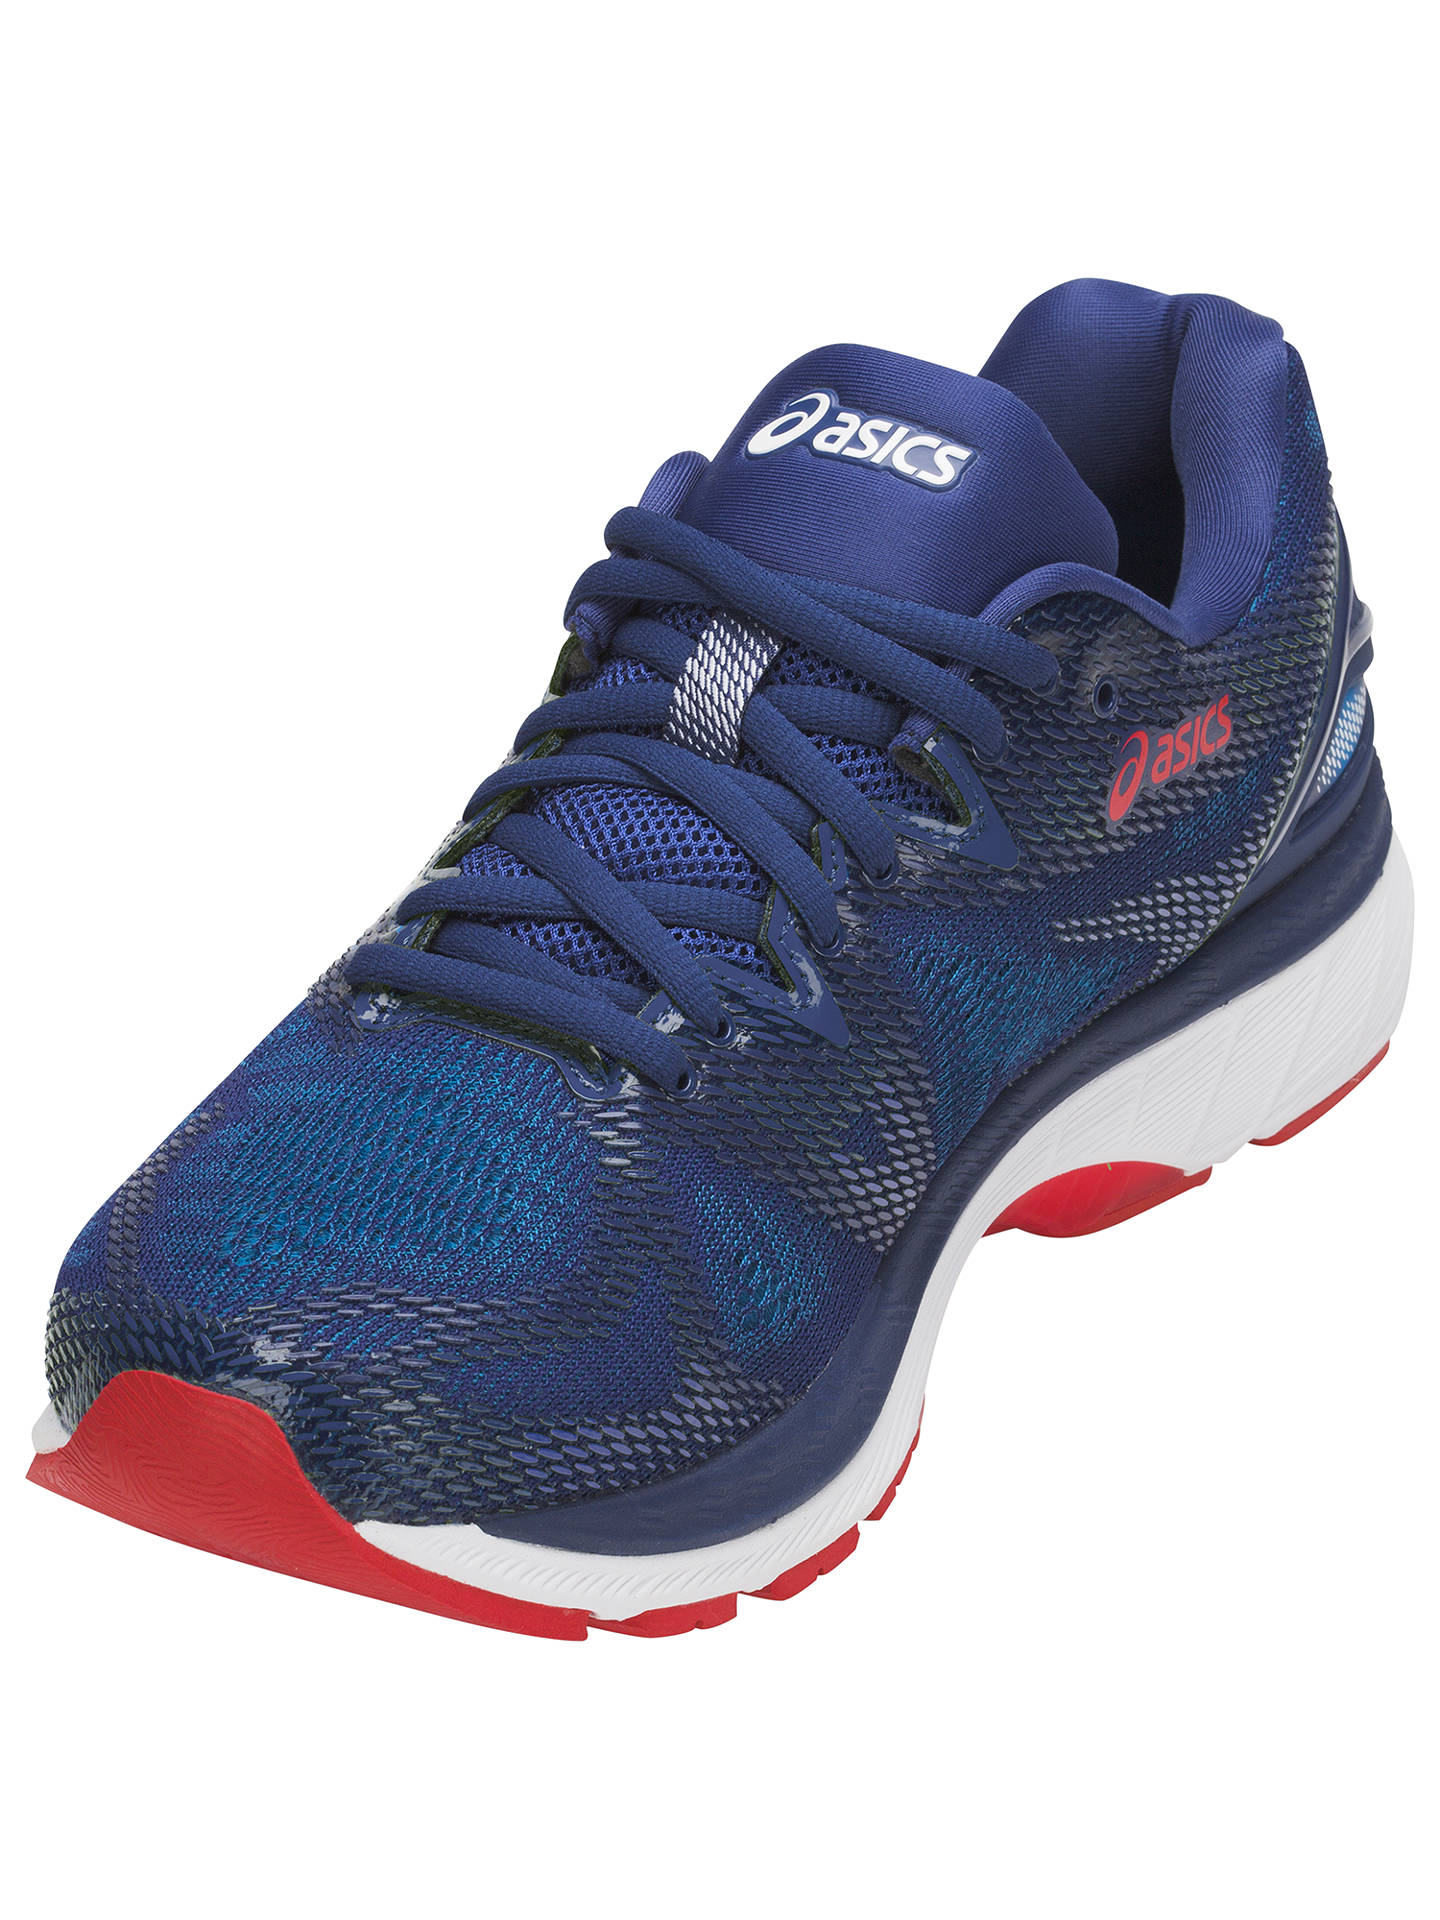 BuyASICS GEL-NIMBUS 20 Men's Running Shoes, Blue Print/Race Blue, 7 Online at johnlewis.com